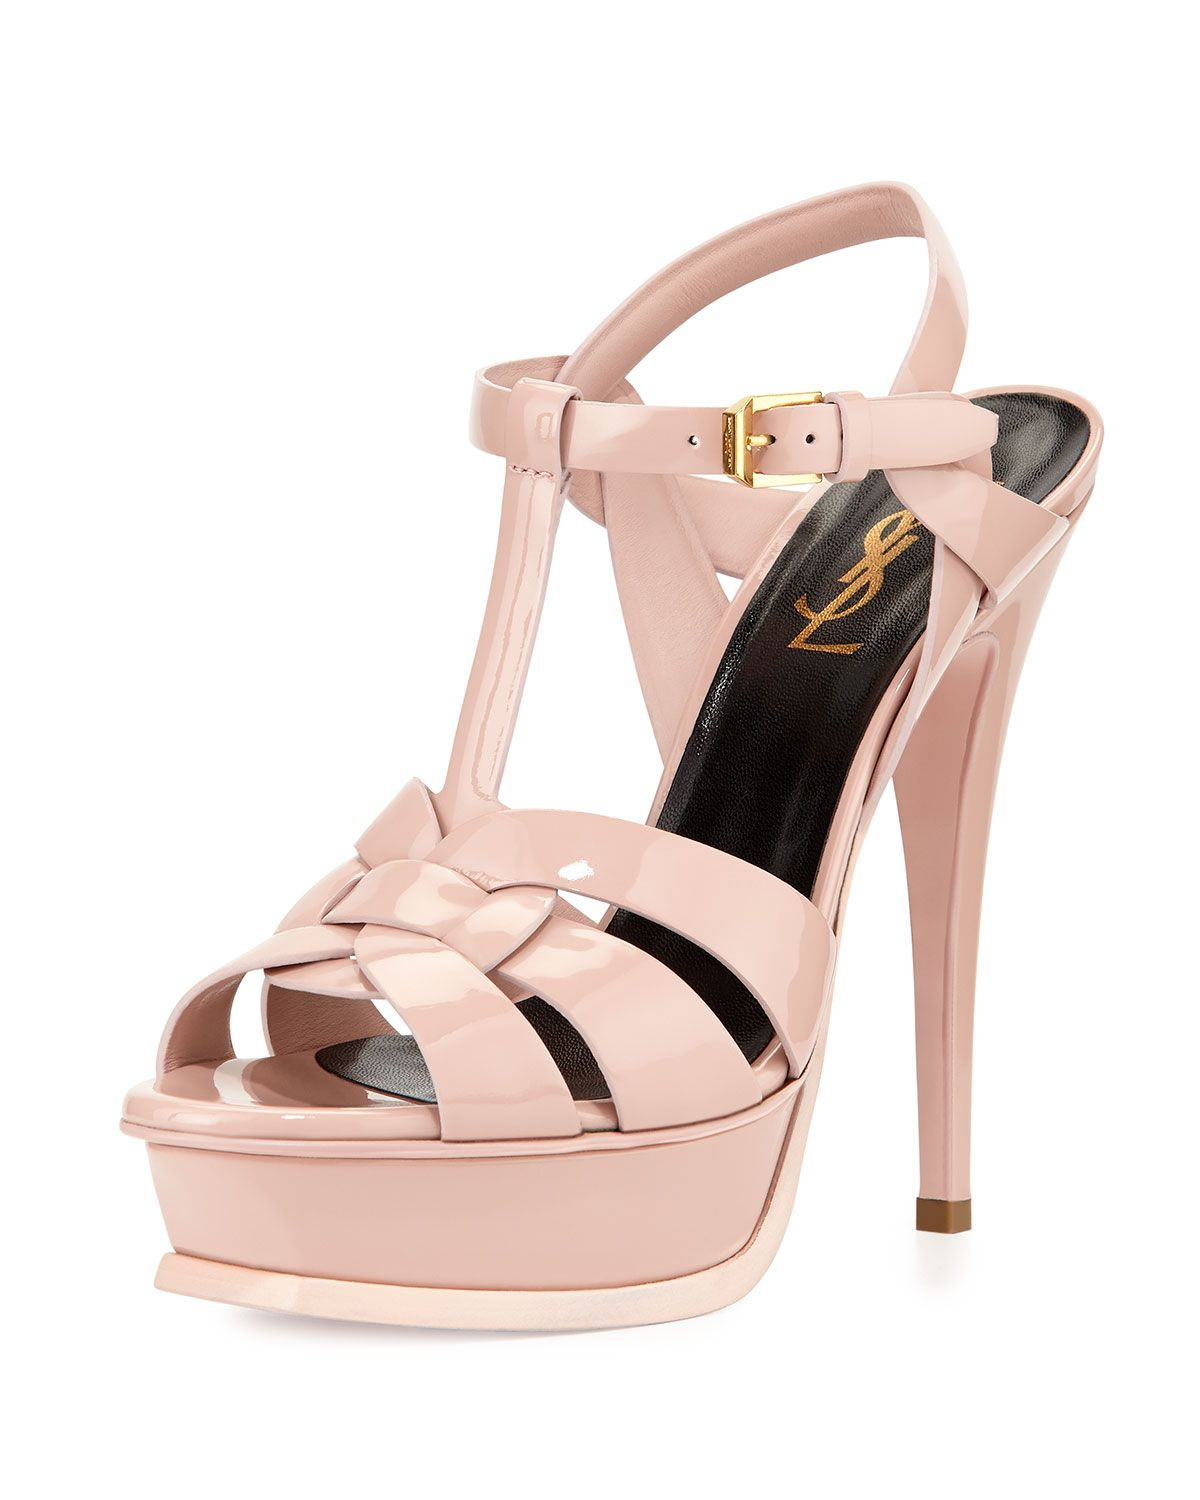 22778f9bcfb2 Best Valentine s Day Gift Guide for Her Ysl Heels